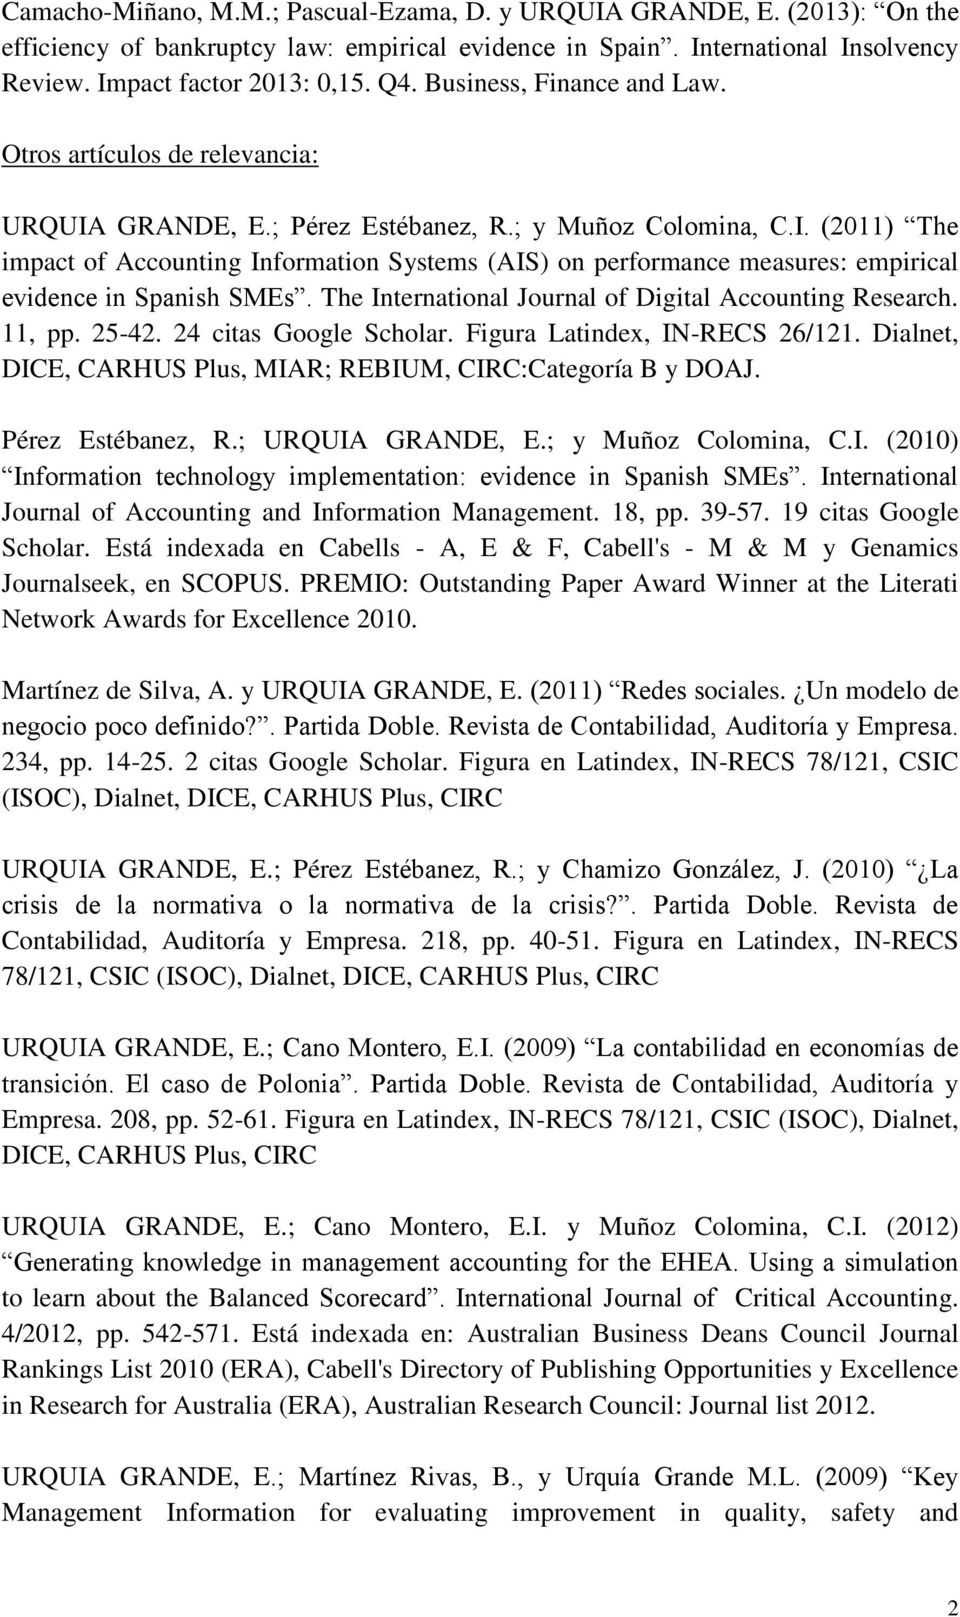 The International Journal of Digital Accounting Research. 11, pp. 25-42. 24 citas Google Scholar. Figura Latindex, IN-RECS 26/121. Dialnet, DICE, CARHUS Plus, MIAR; REBIUM, CIRC:Categoría B y DOAJ.